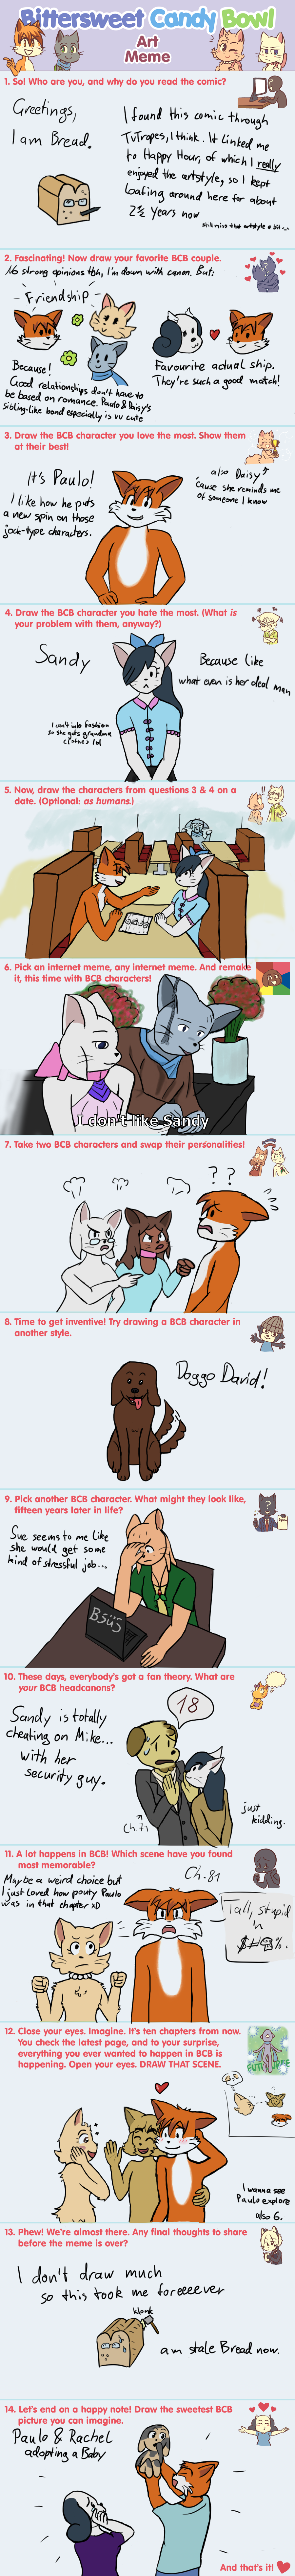 Candybooru image #13884, tagged with BCB_Art_Meme Bread_(Artist) Daisy David James Lucy Madison Mike Paulo PauloxJames PauloxRachel Rachel Sandy